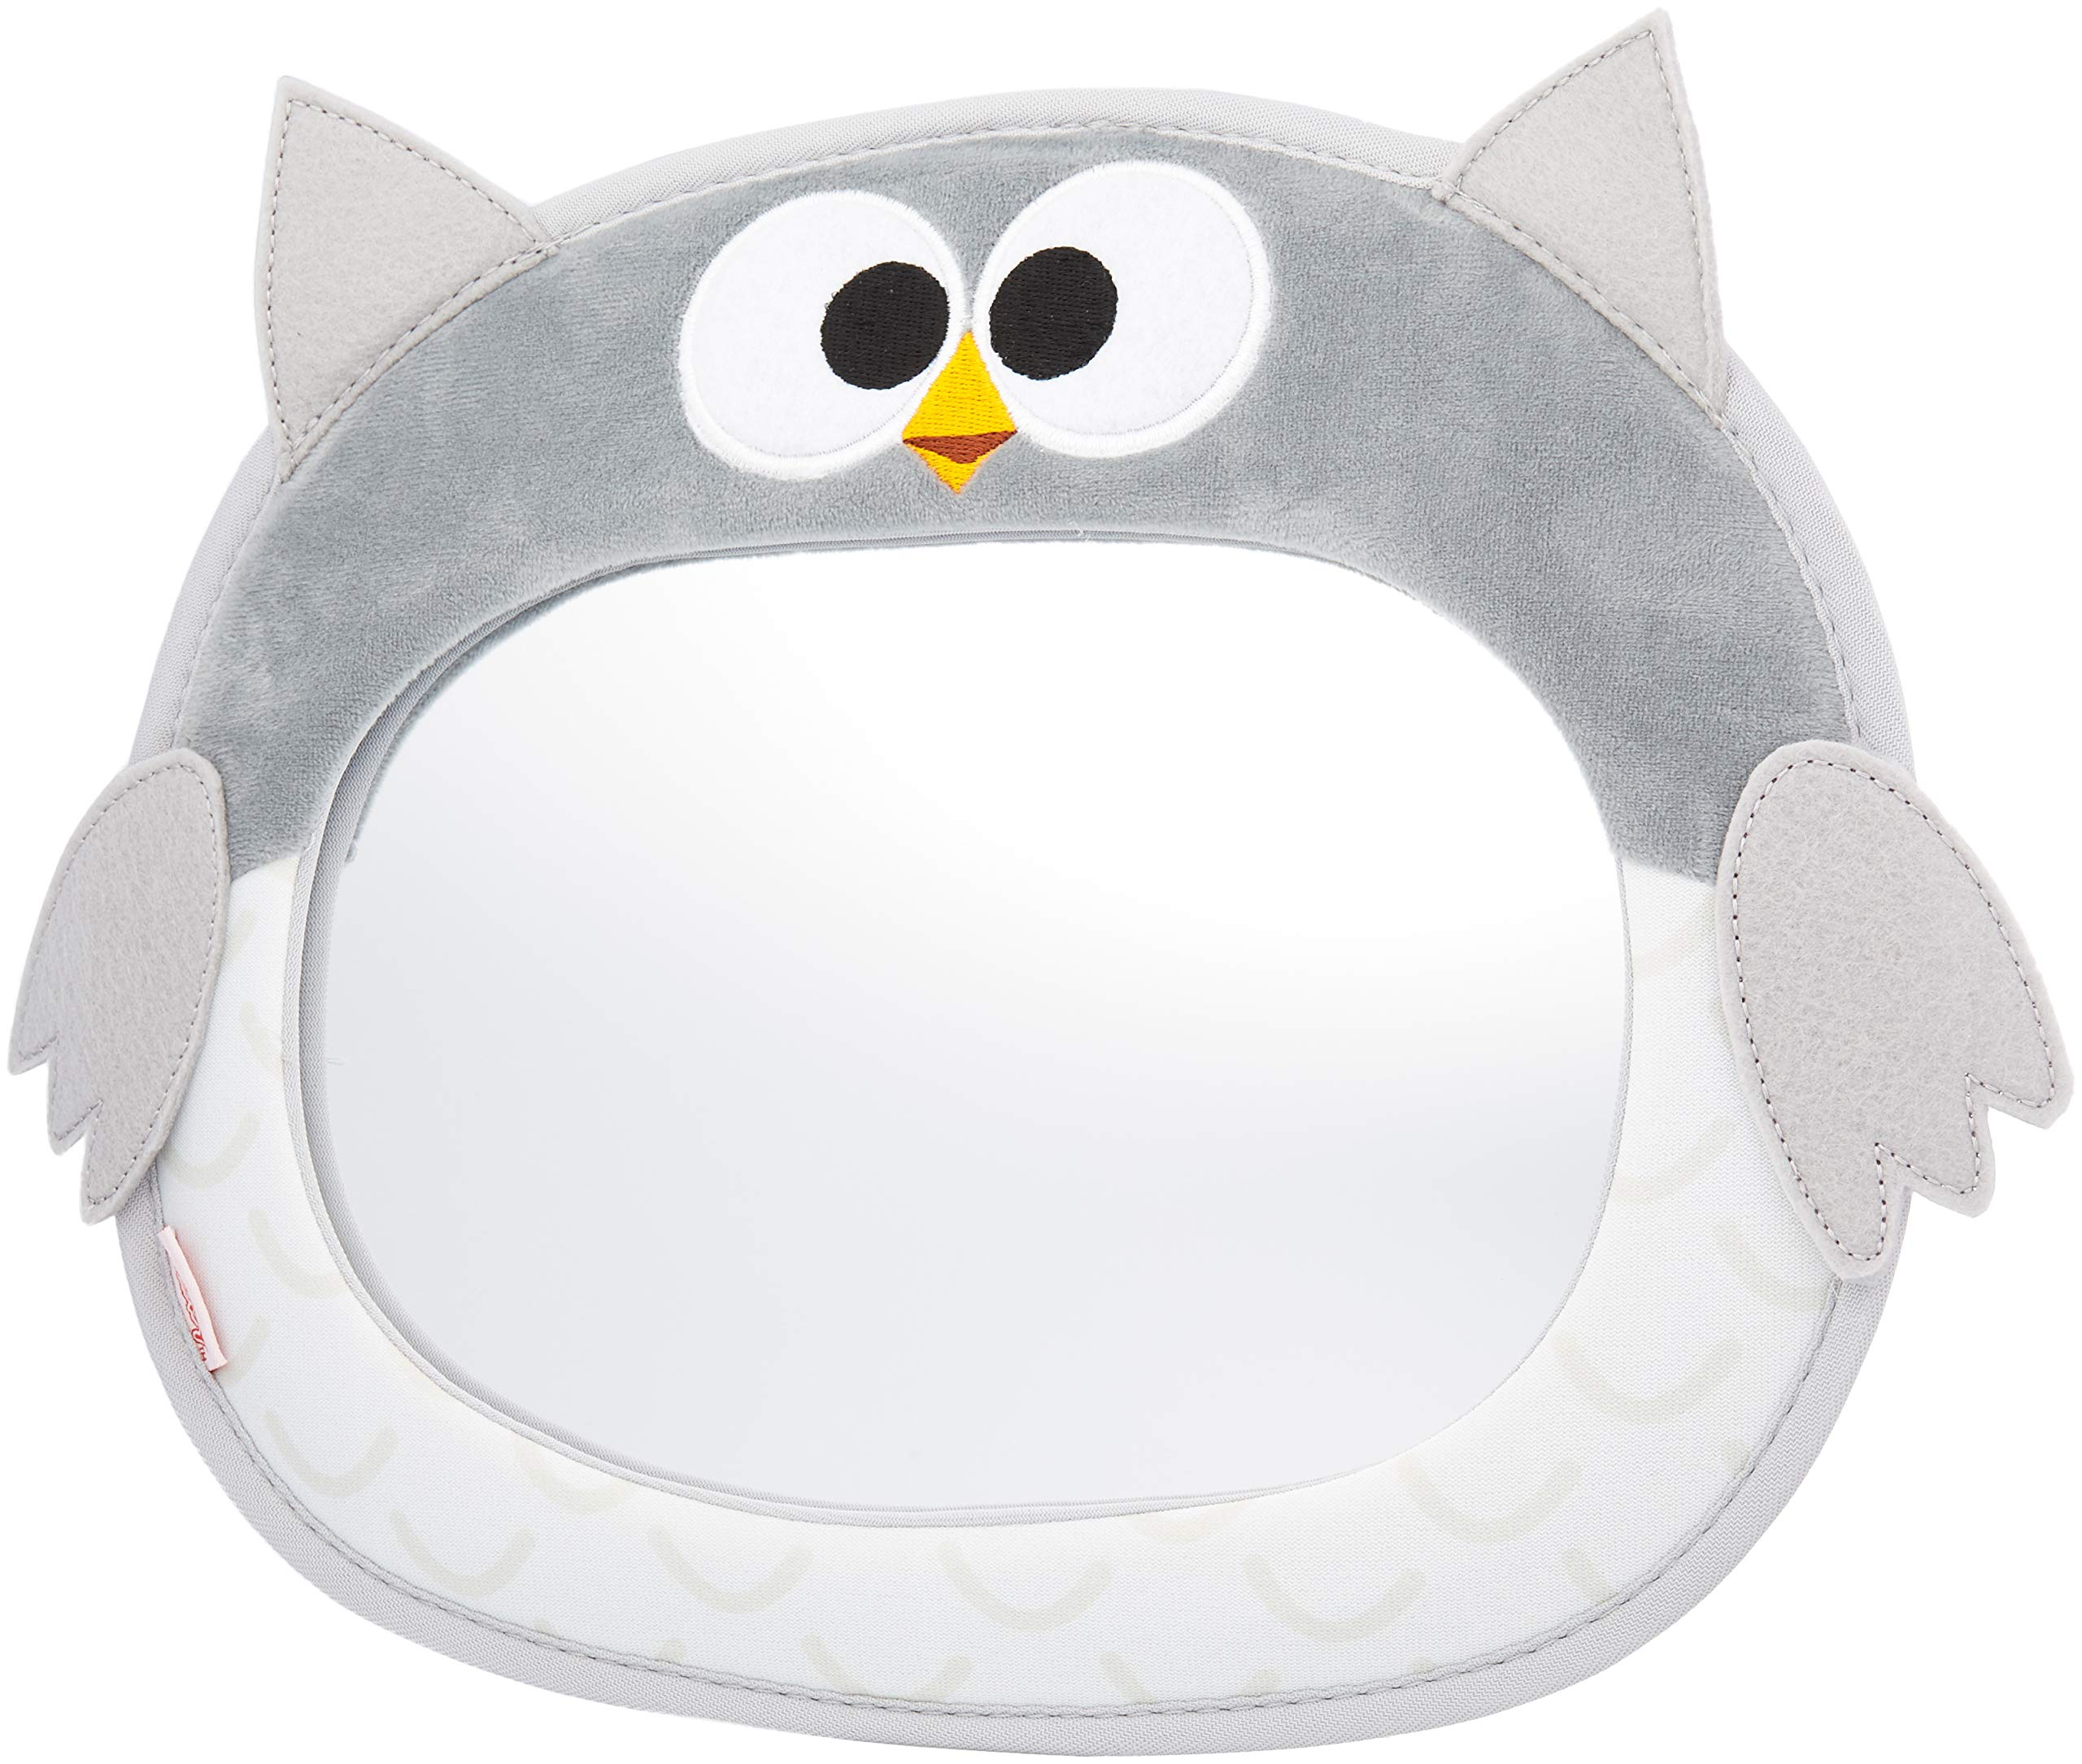 Nuby Baby Backseat Mirror for Car - View Infant in Rear Facing Car Seat, Owl, Child Toddler Travel by Nuby